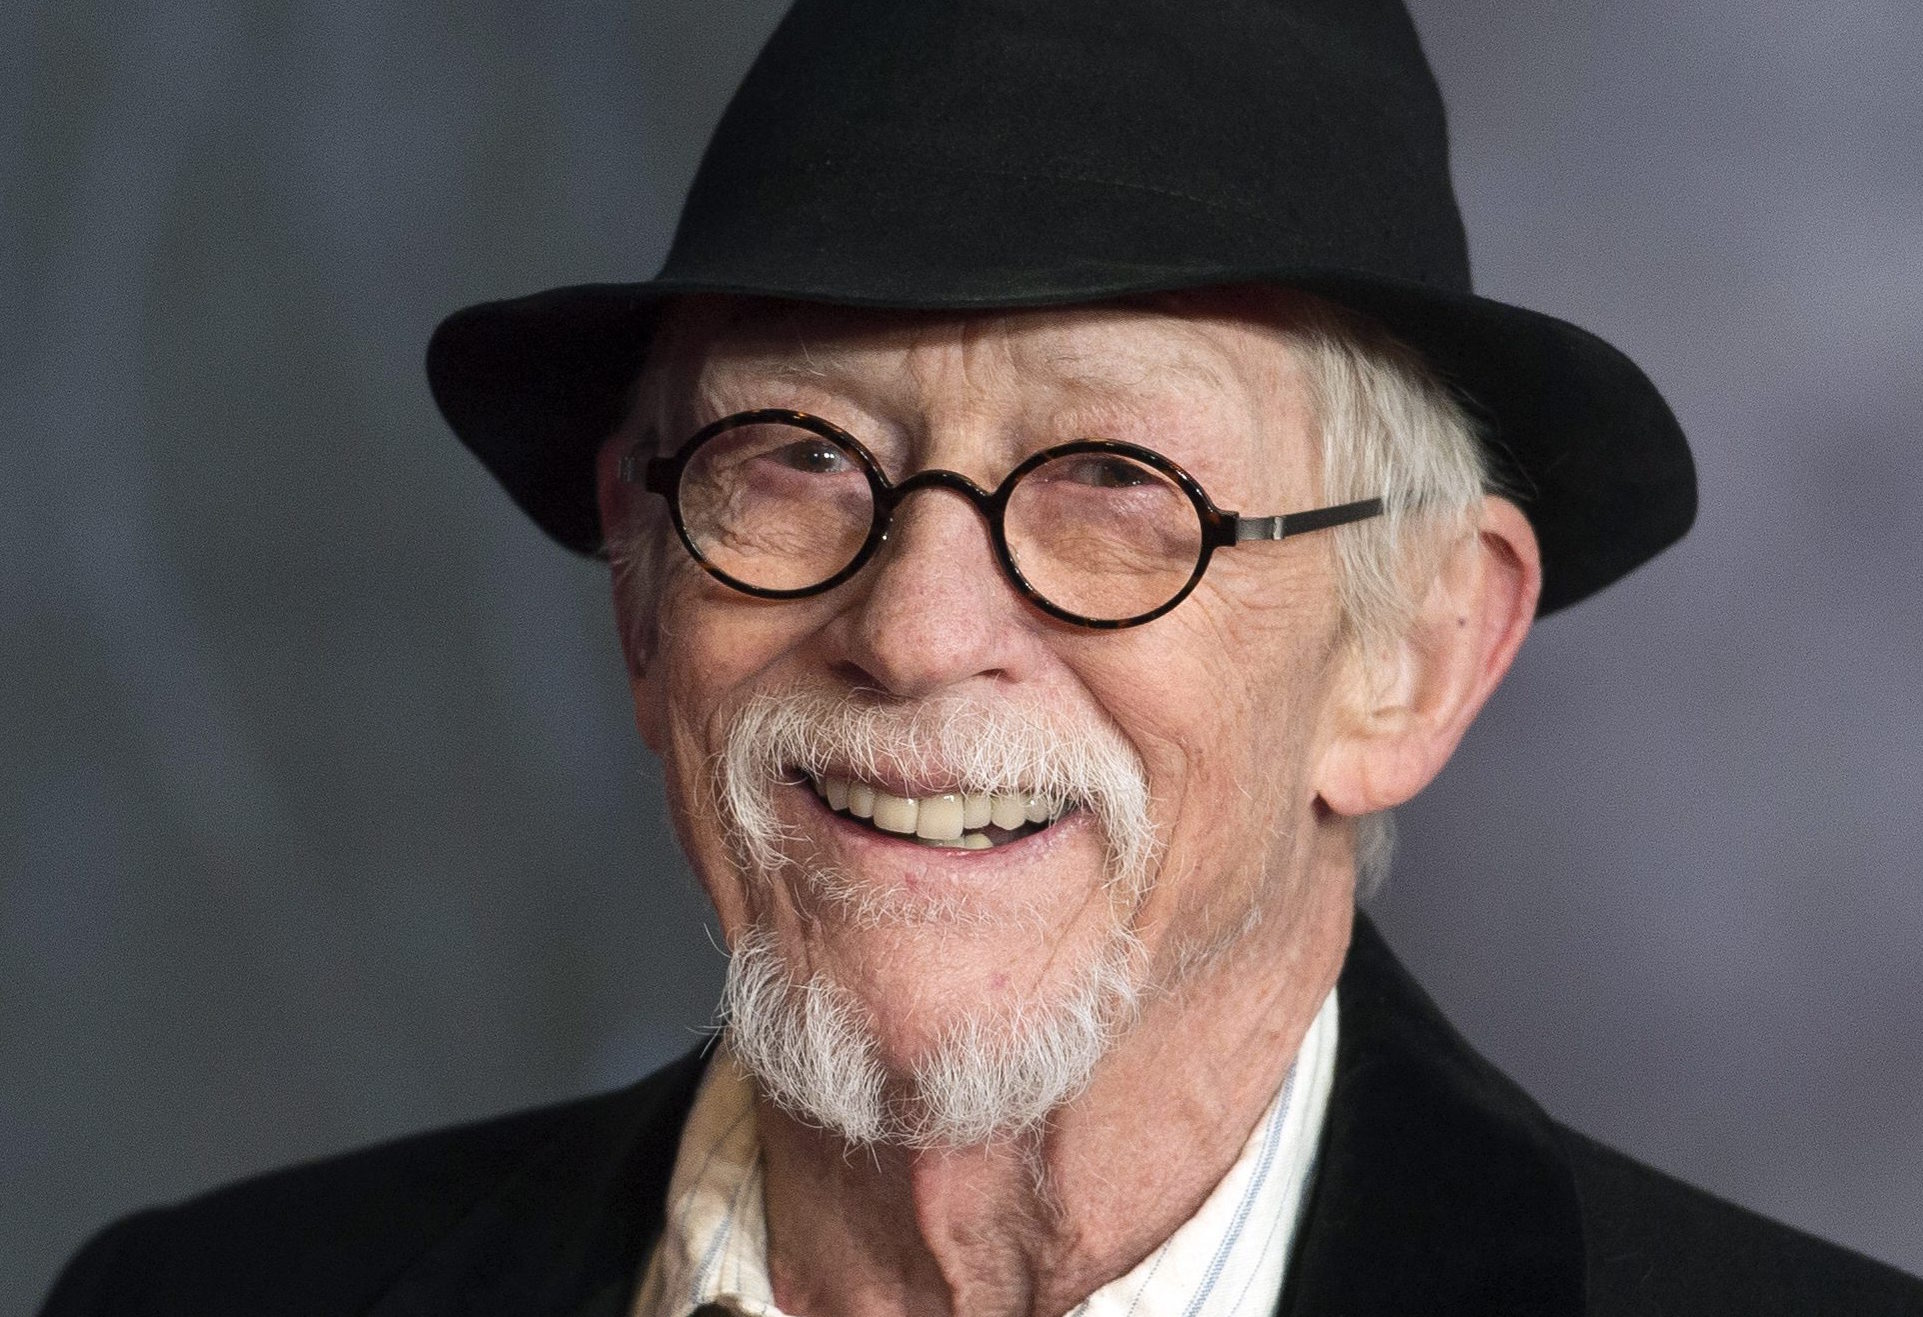 British actor John Hurt dead at 77